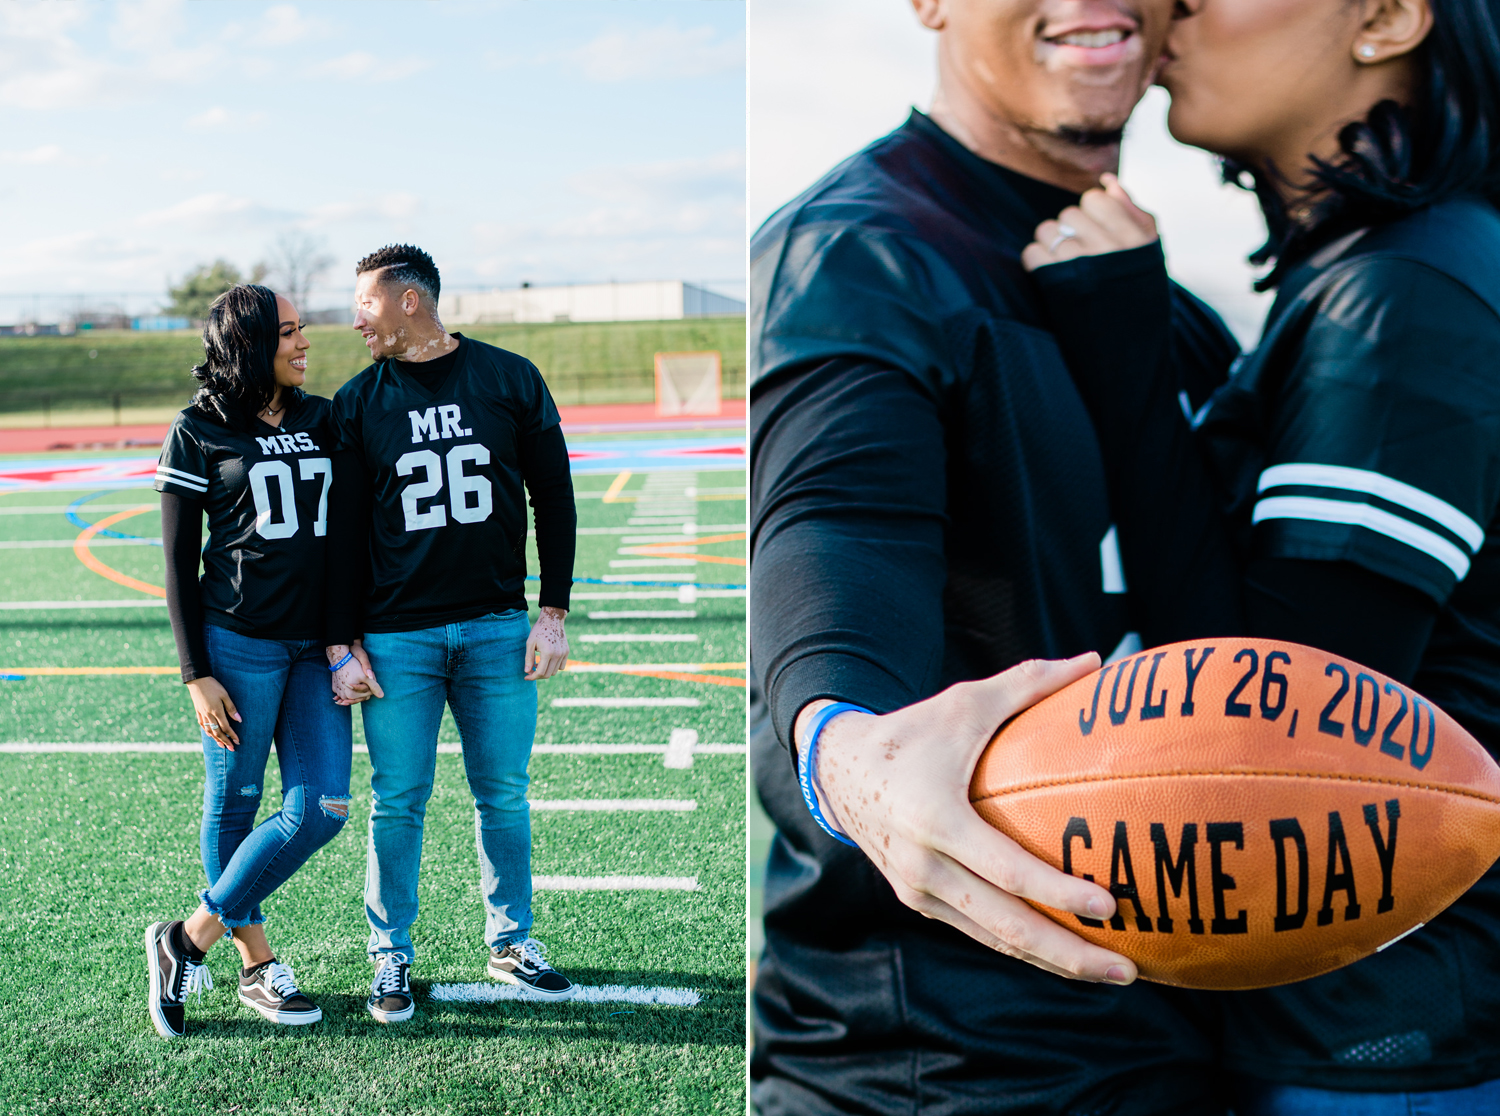 Left side, Black woman and Black man - a couple, are smiling at each other in coordinating jerseys. Right side, Black woman kisses Black man while he holds a football with Game Day and July 26, 2020 on it.  By Tonjanika Smith Photography